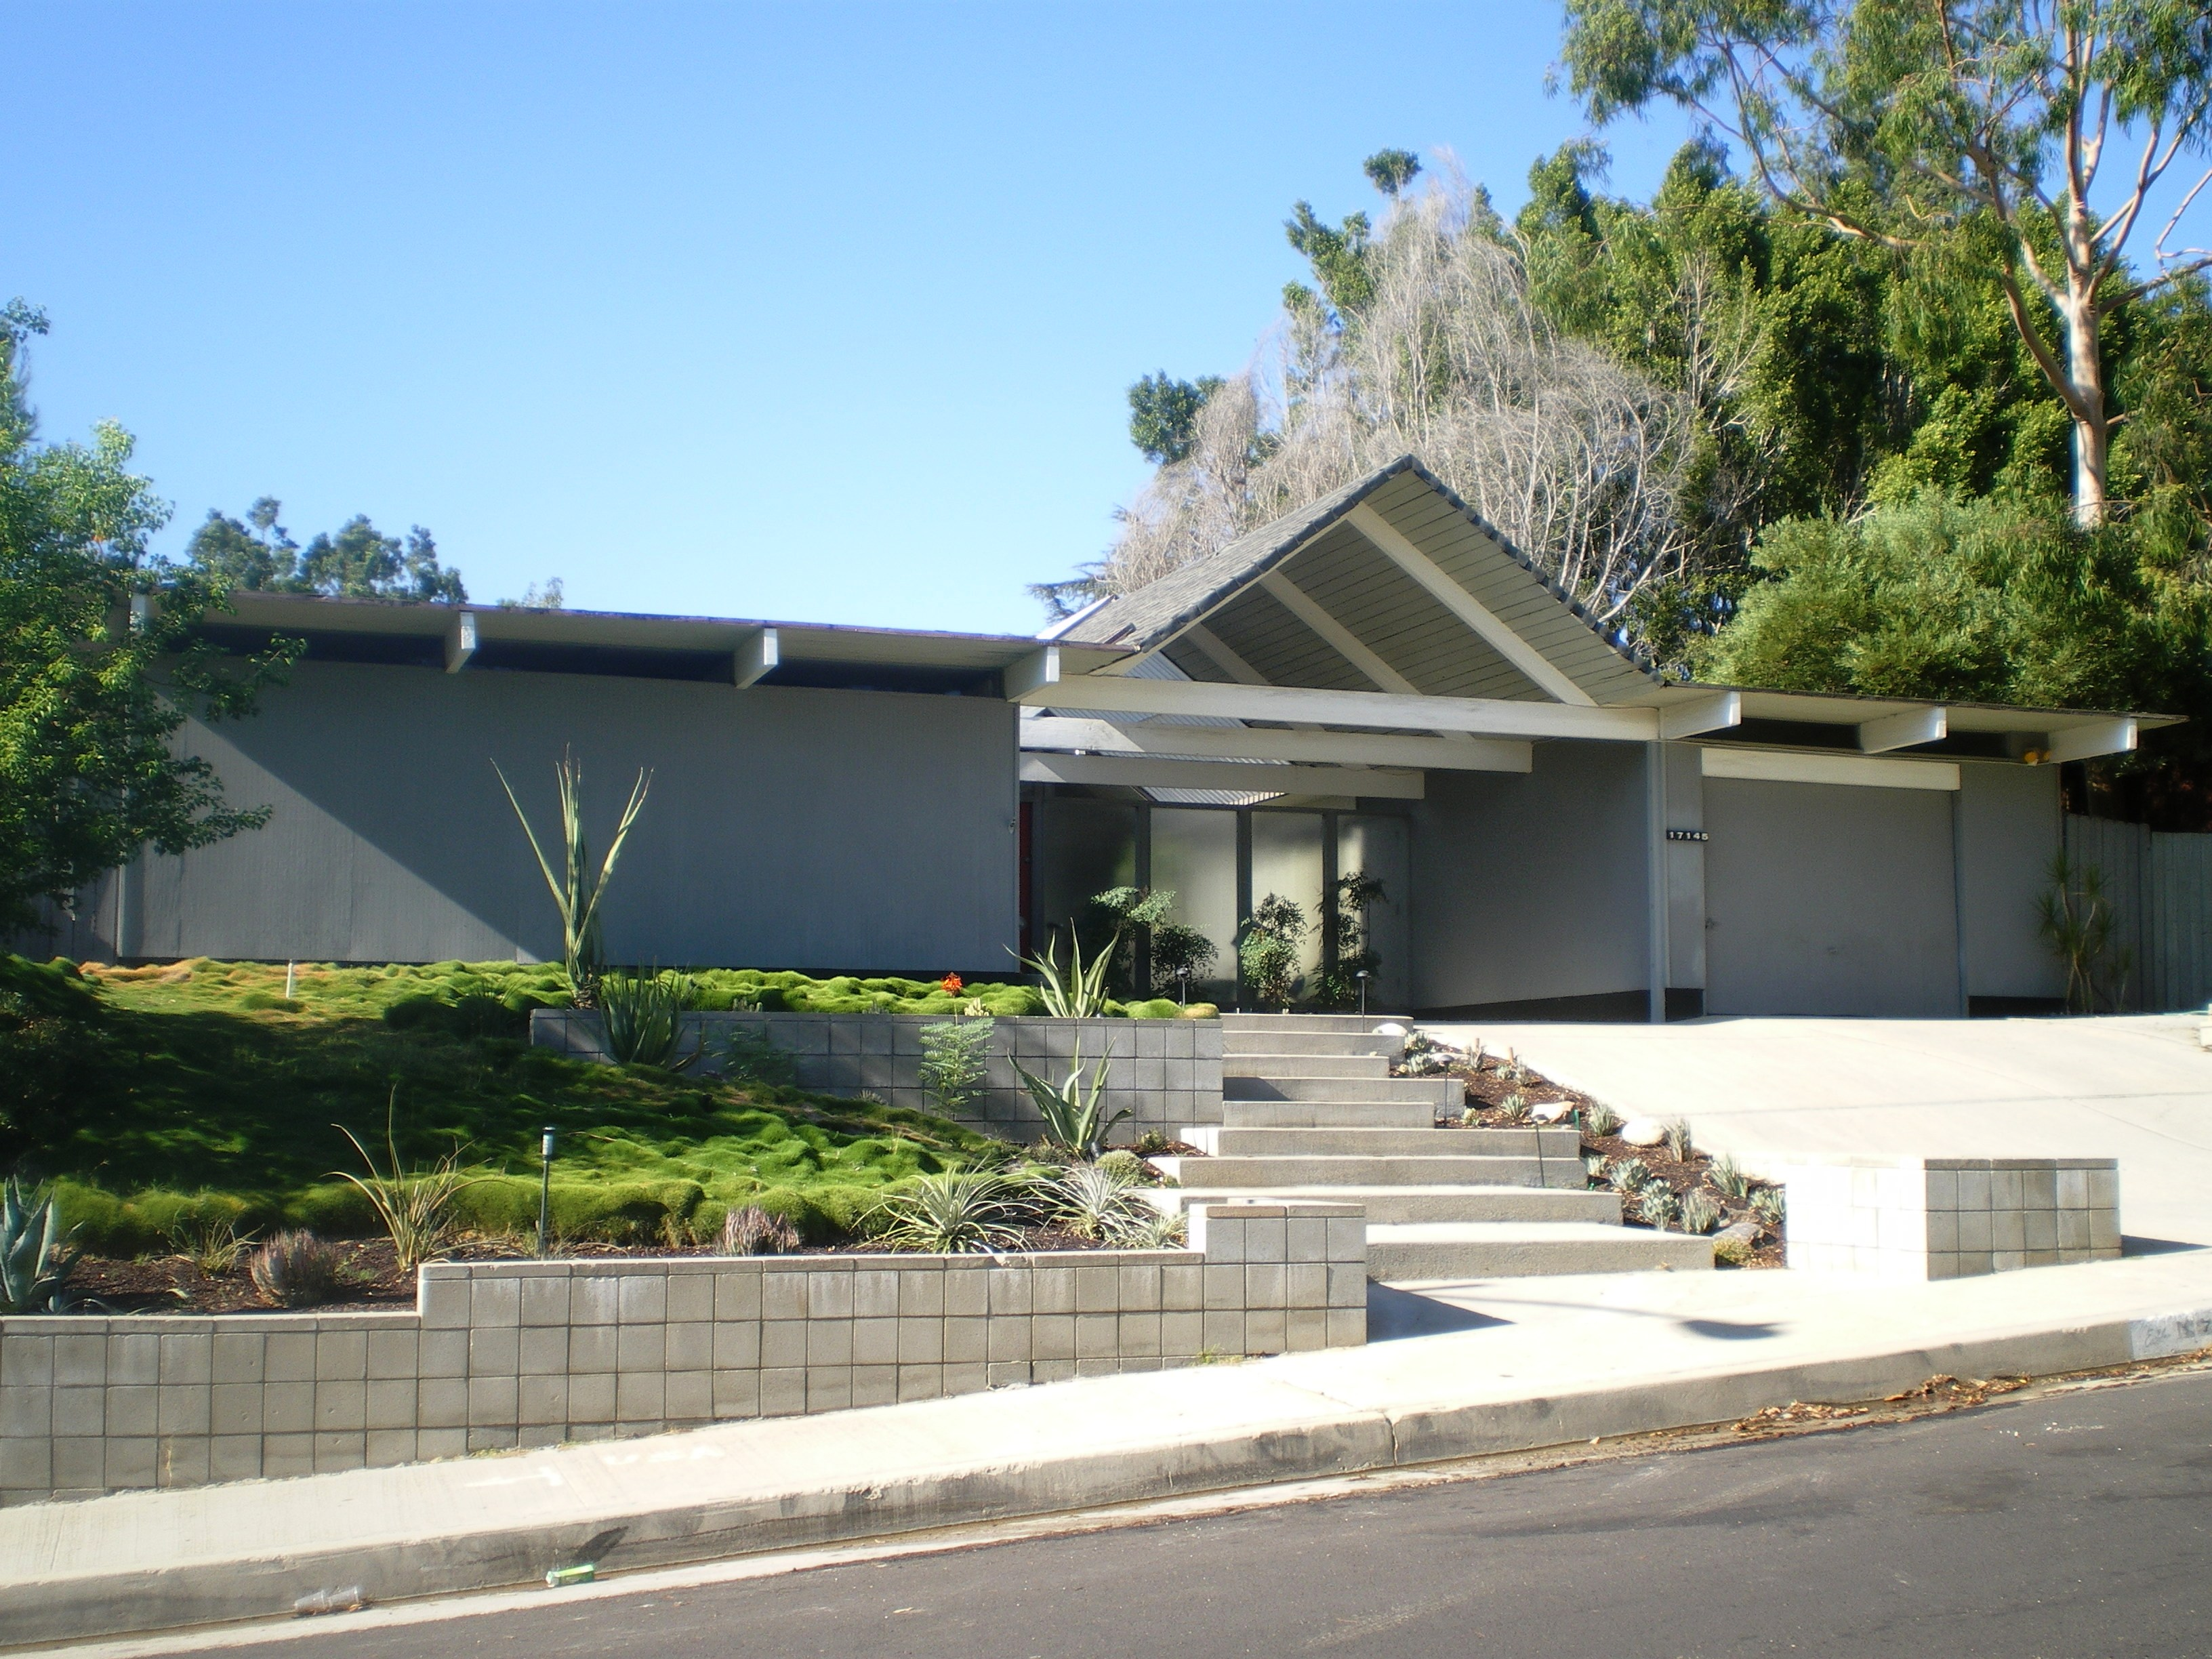 Joseph eichler and the apple architectoid for Eichler designs